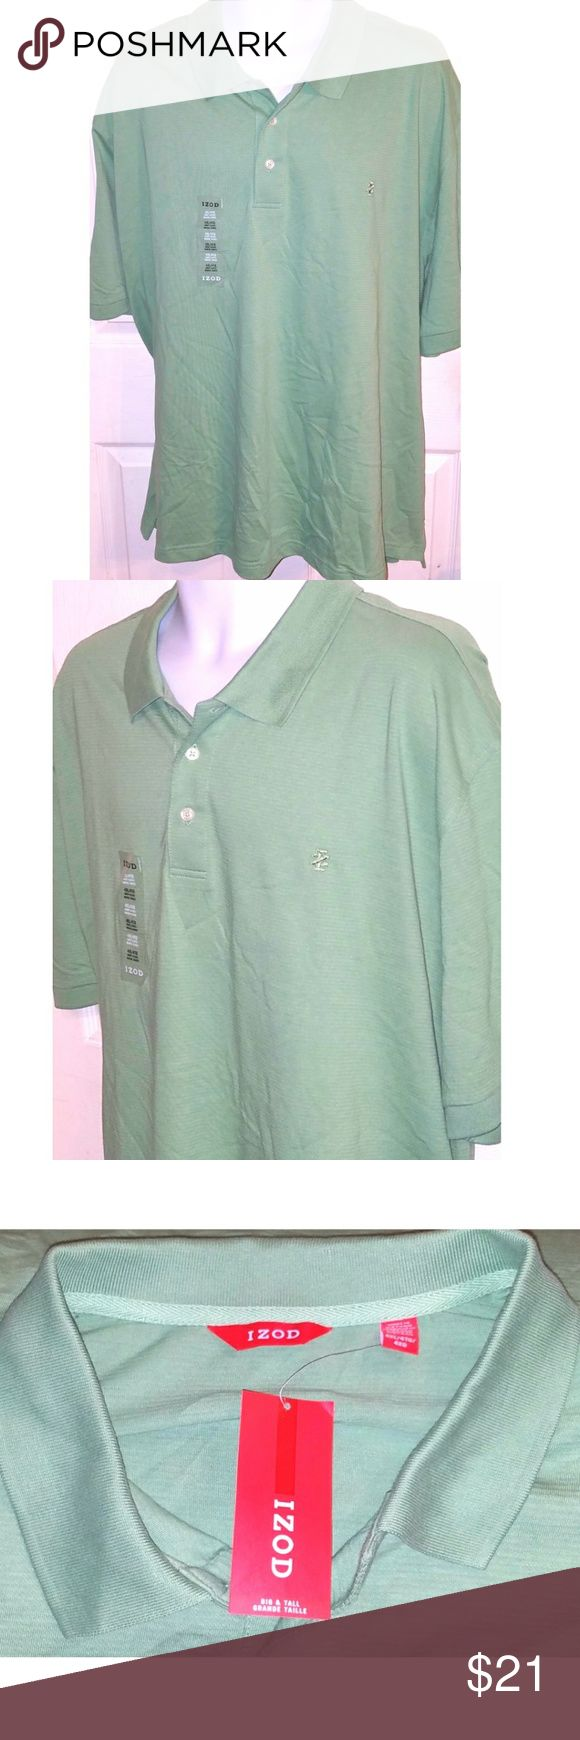 NWT Izod Mens Short Sleeve Polo Shirt 4XL This is a mens 4XL short sleeve polo shirt by Izod. The chest measures 31 inches and the length is 34 inches. Izod Shirts Polos